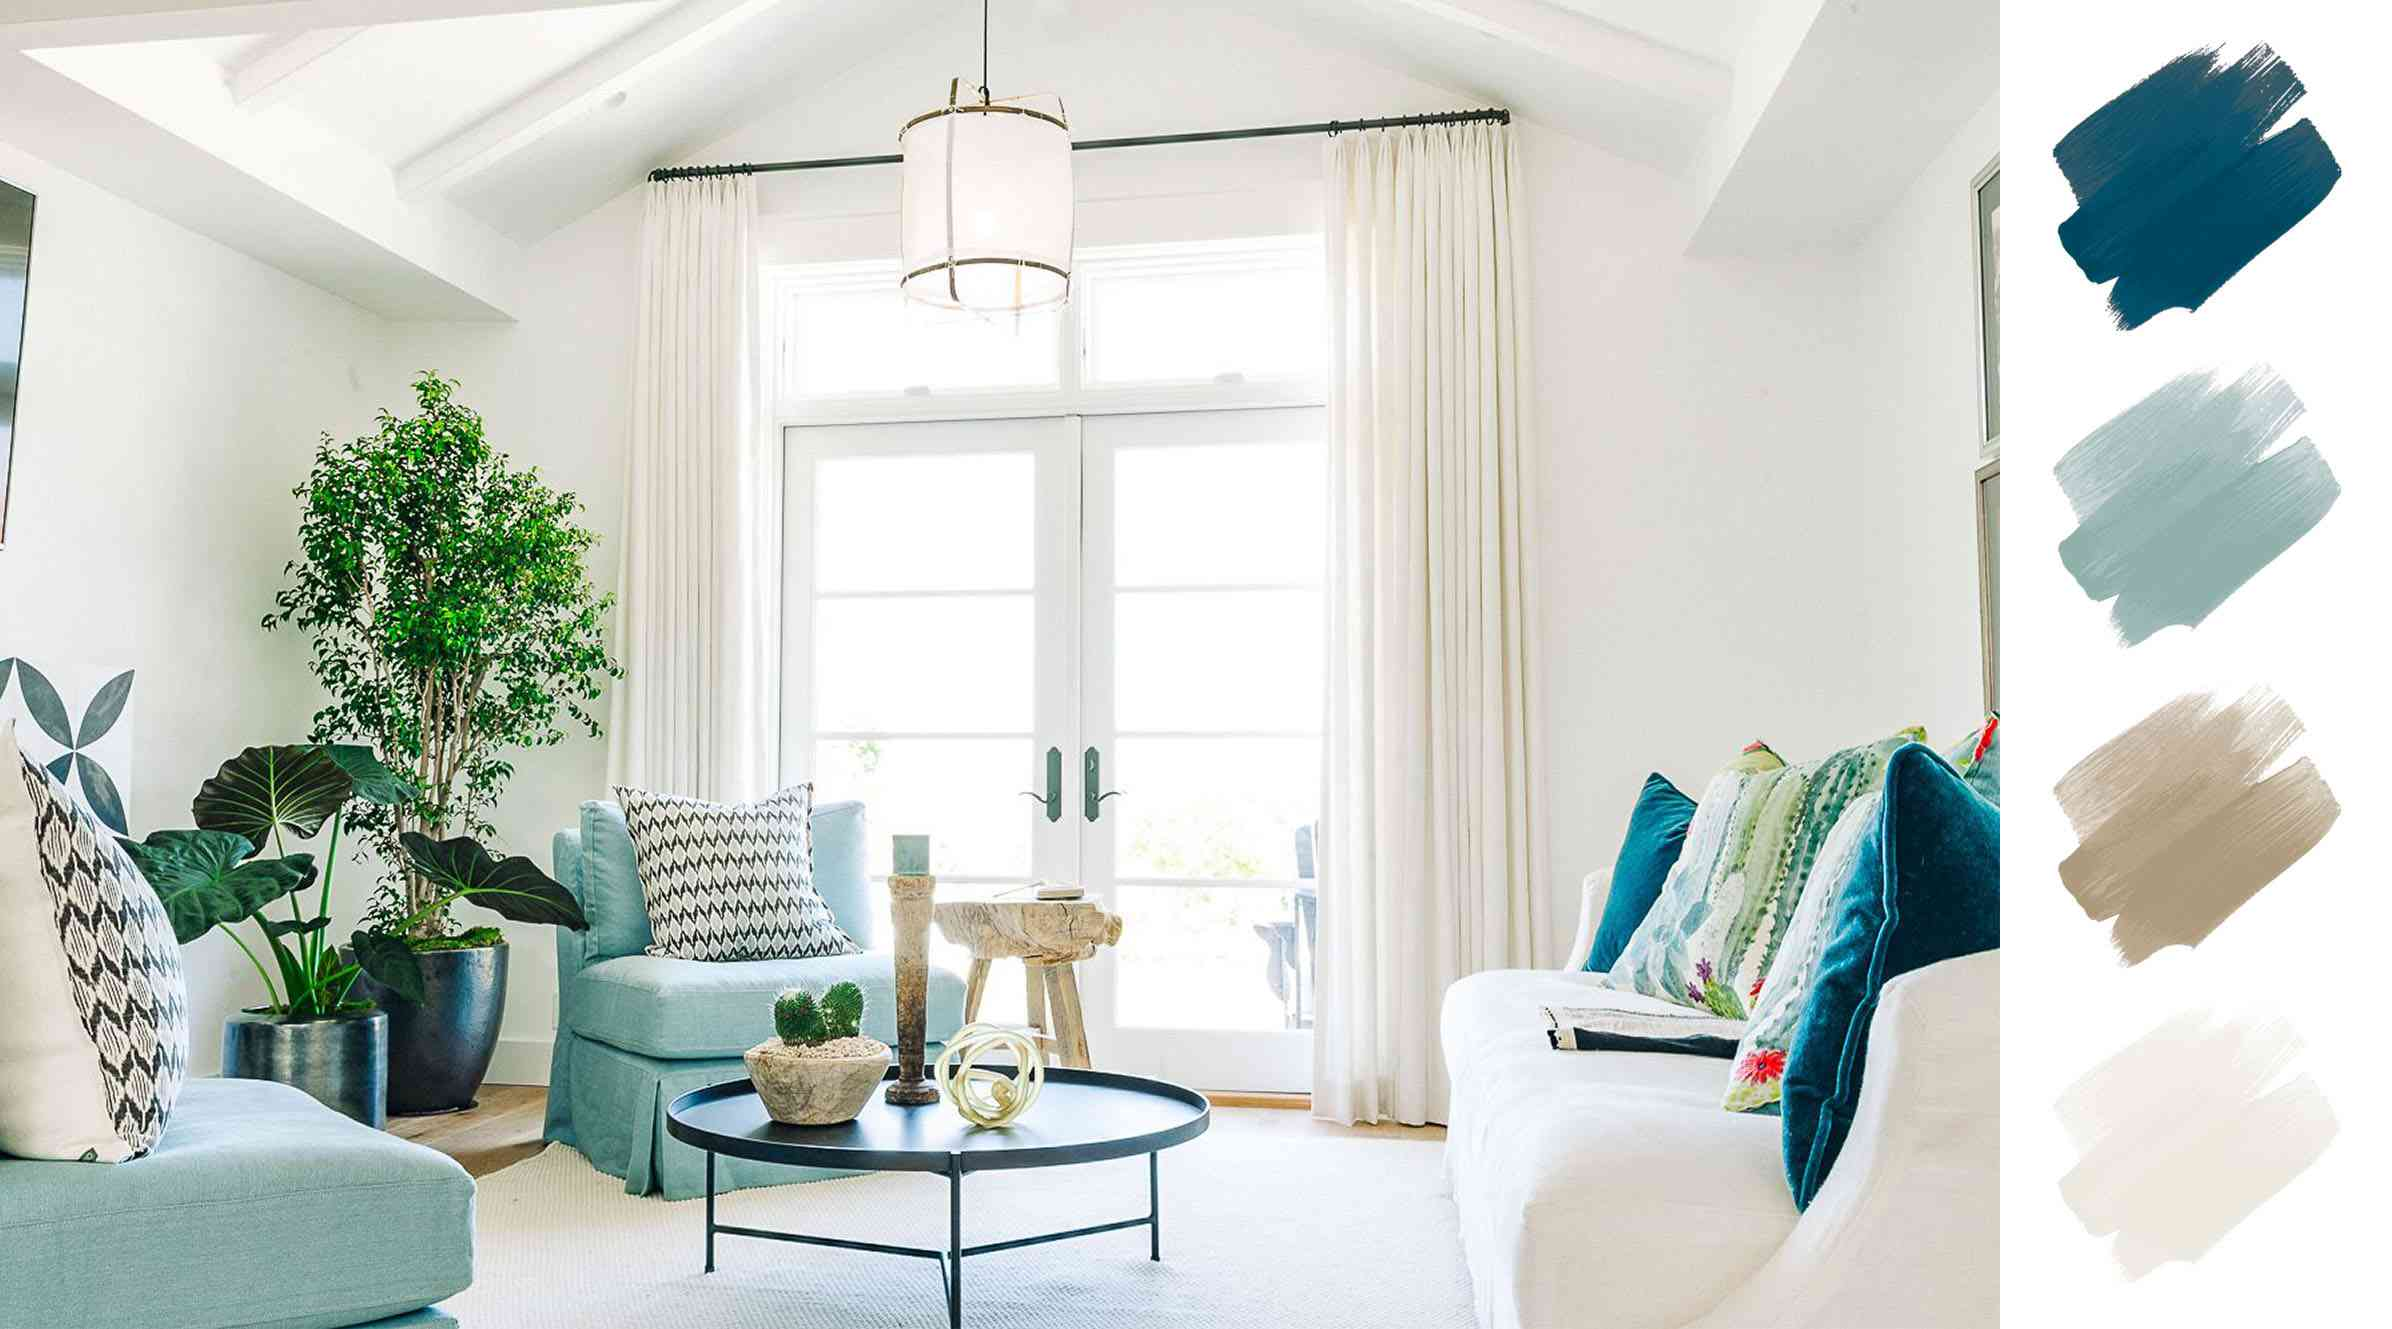 living room color schemes - robin's egg blue, peacock and white